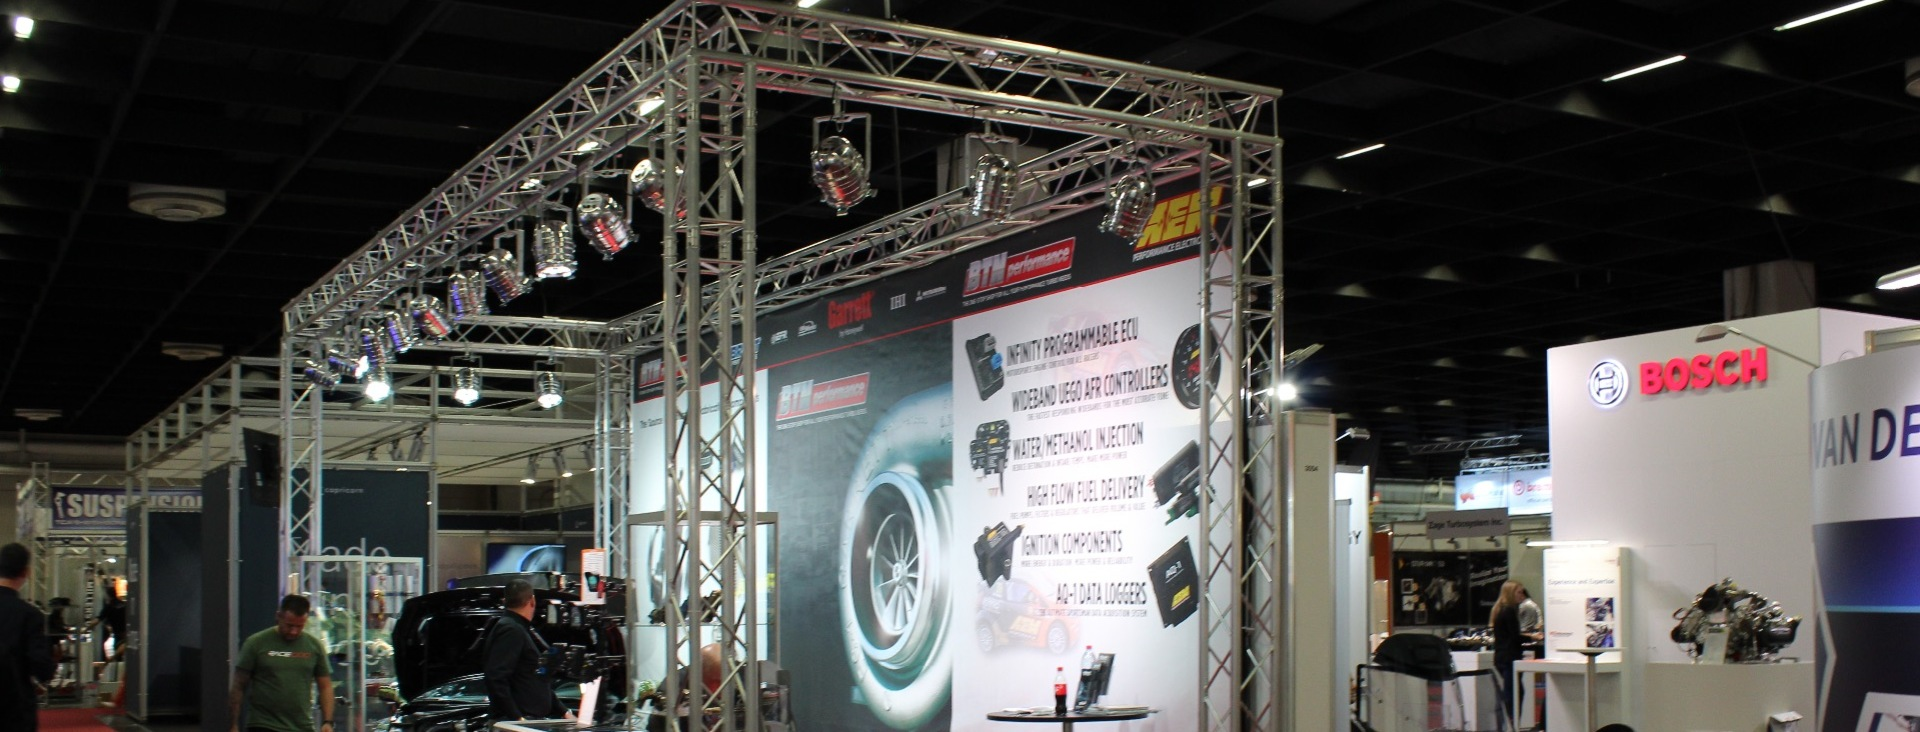 Exhibition Stand Etiquette : Exhibition stand and equipment hire birmingham nec excel